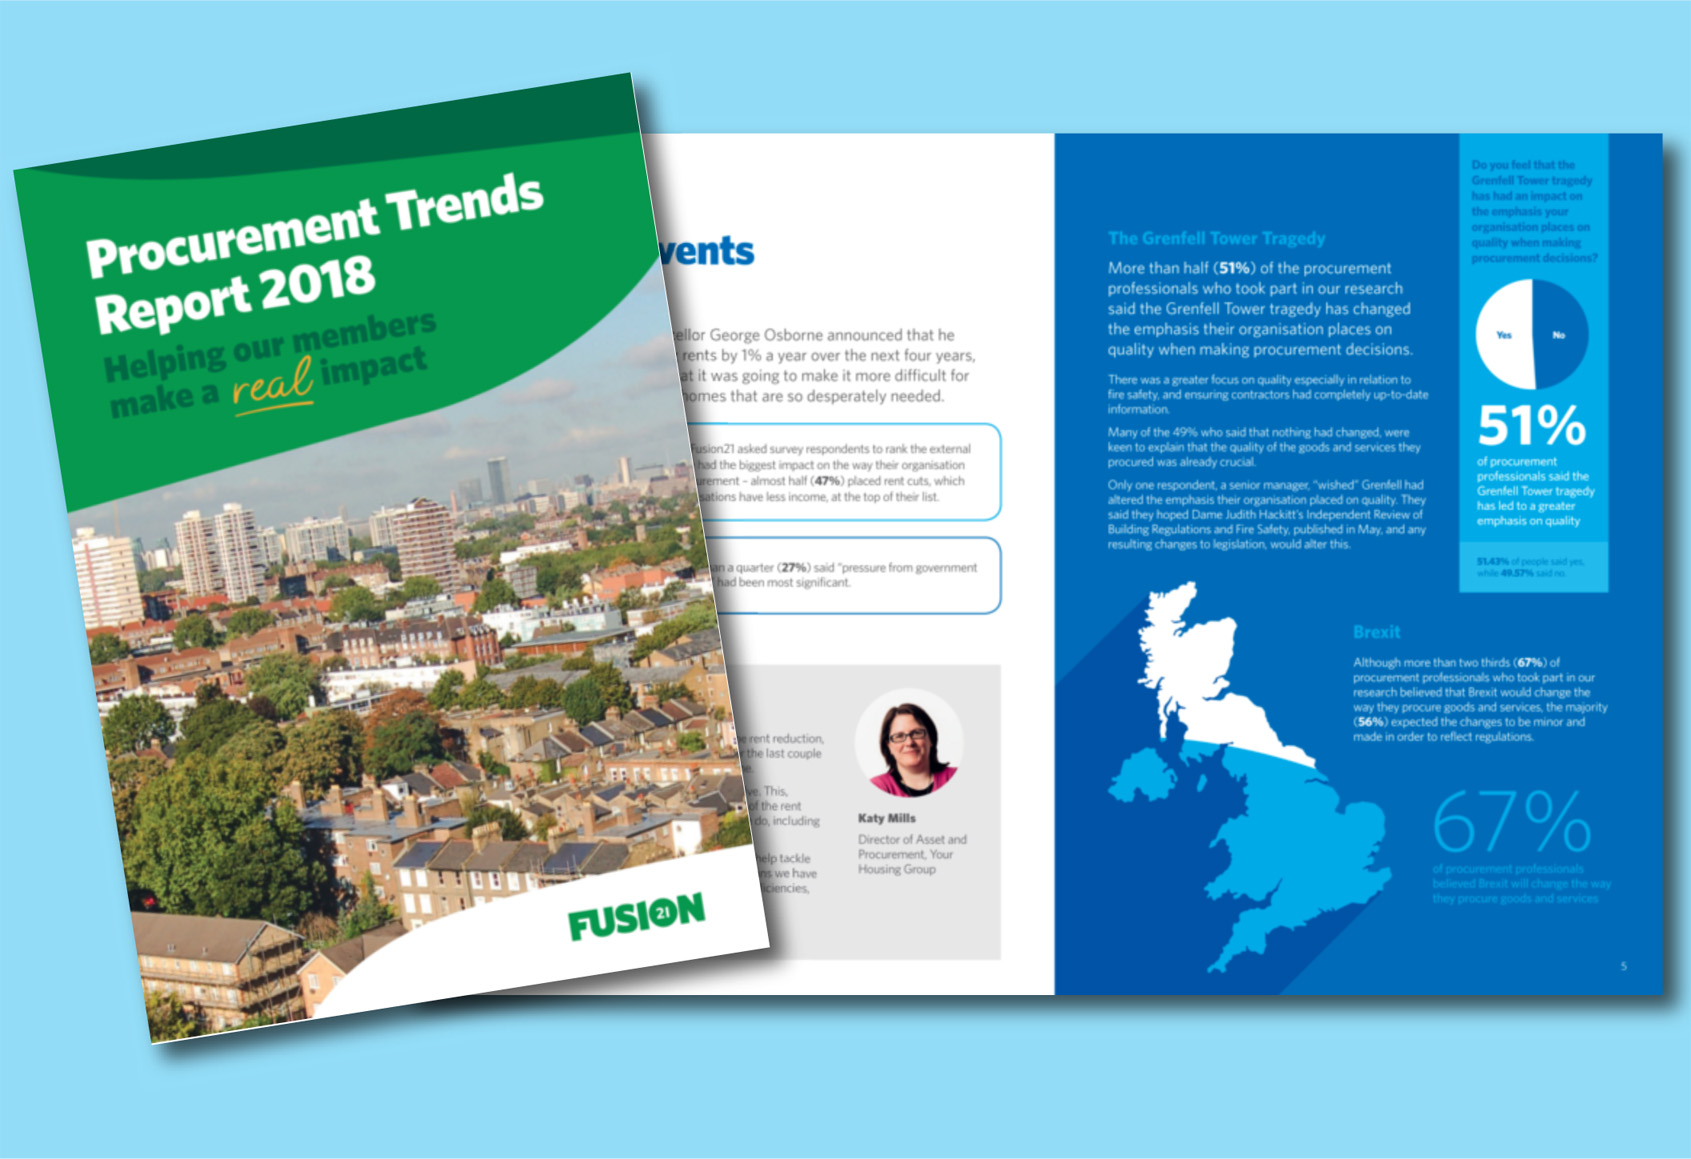 Fusion21 launches survey to uncover procurement trends